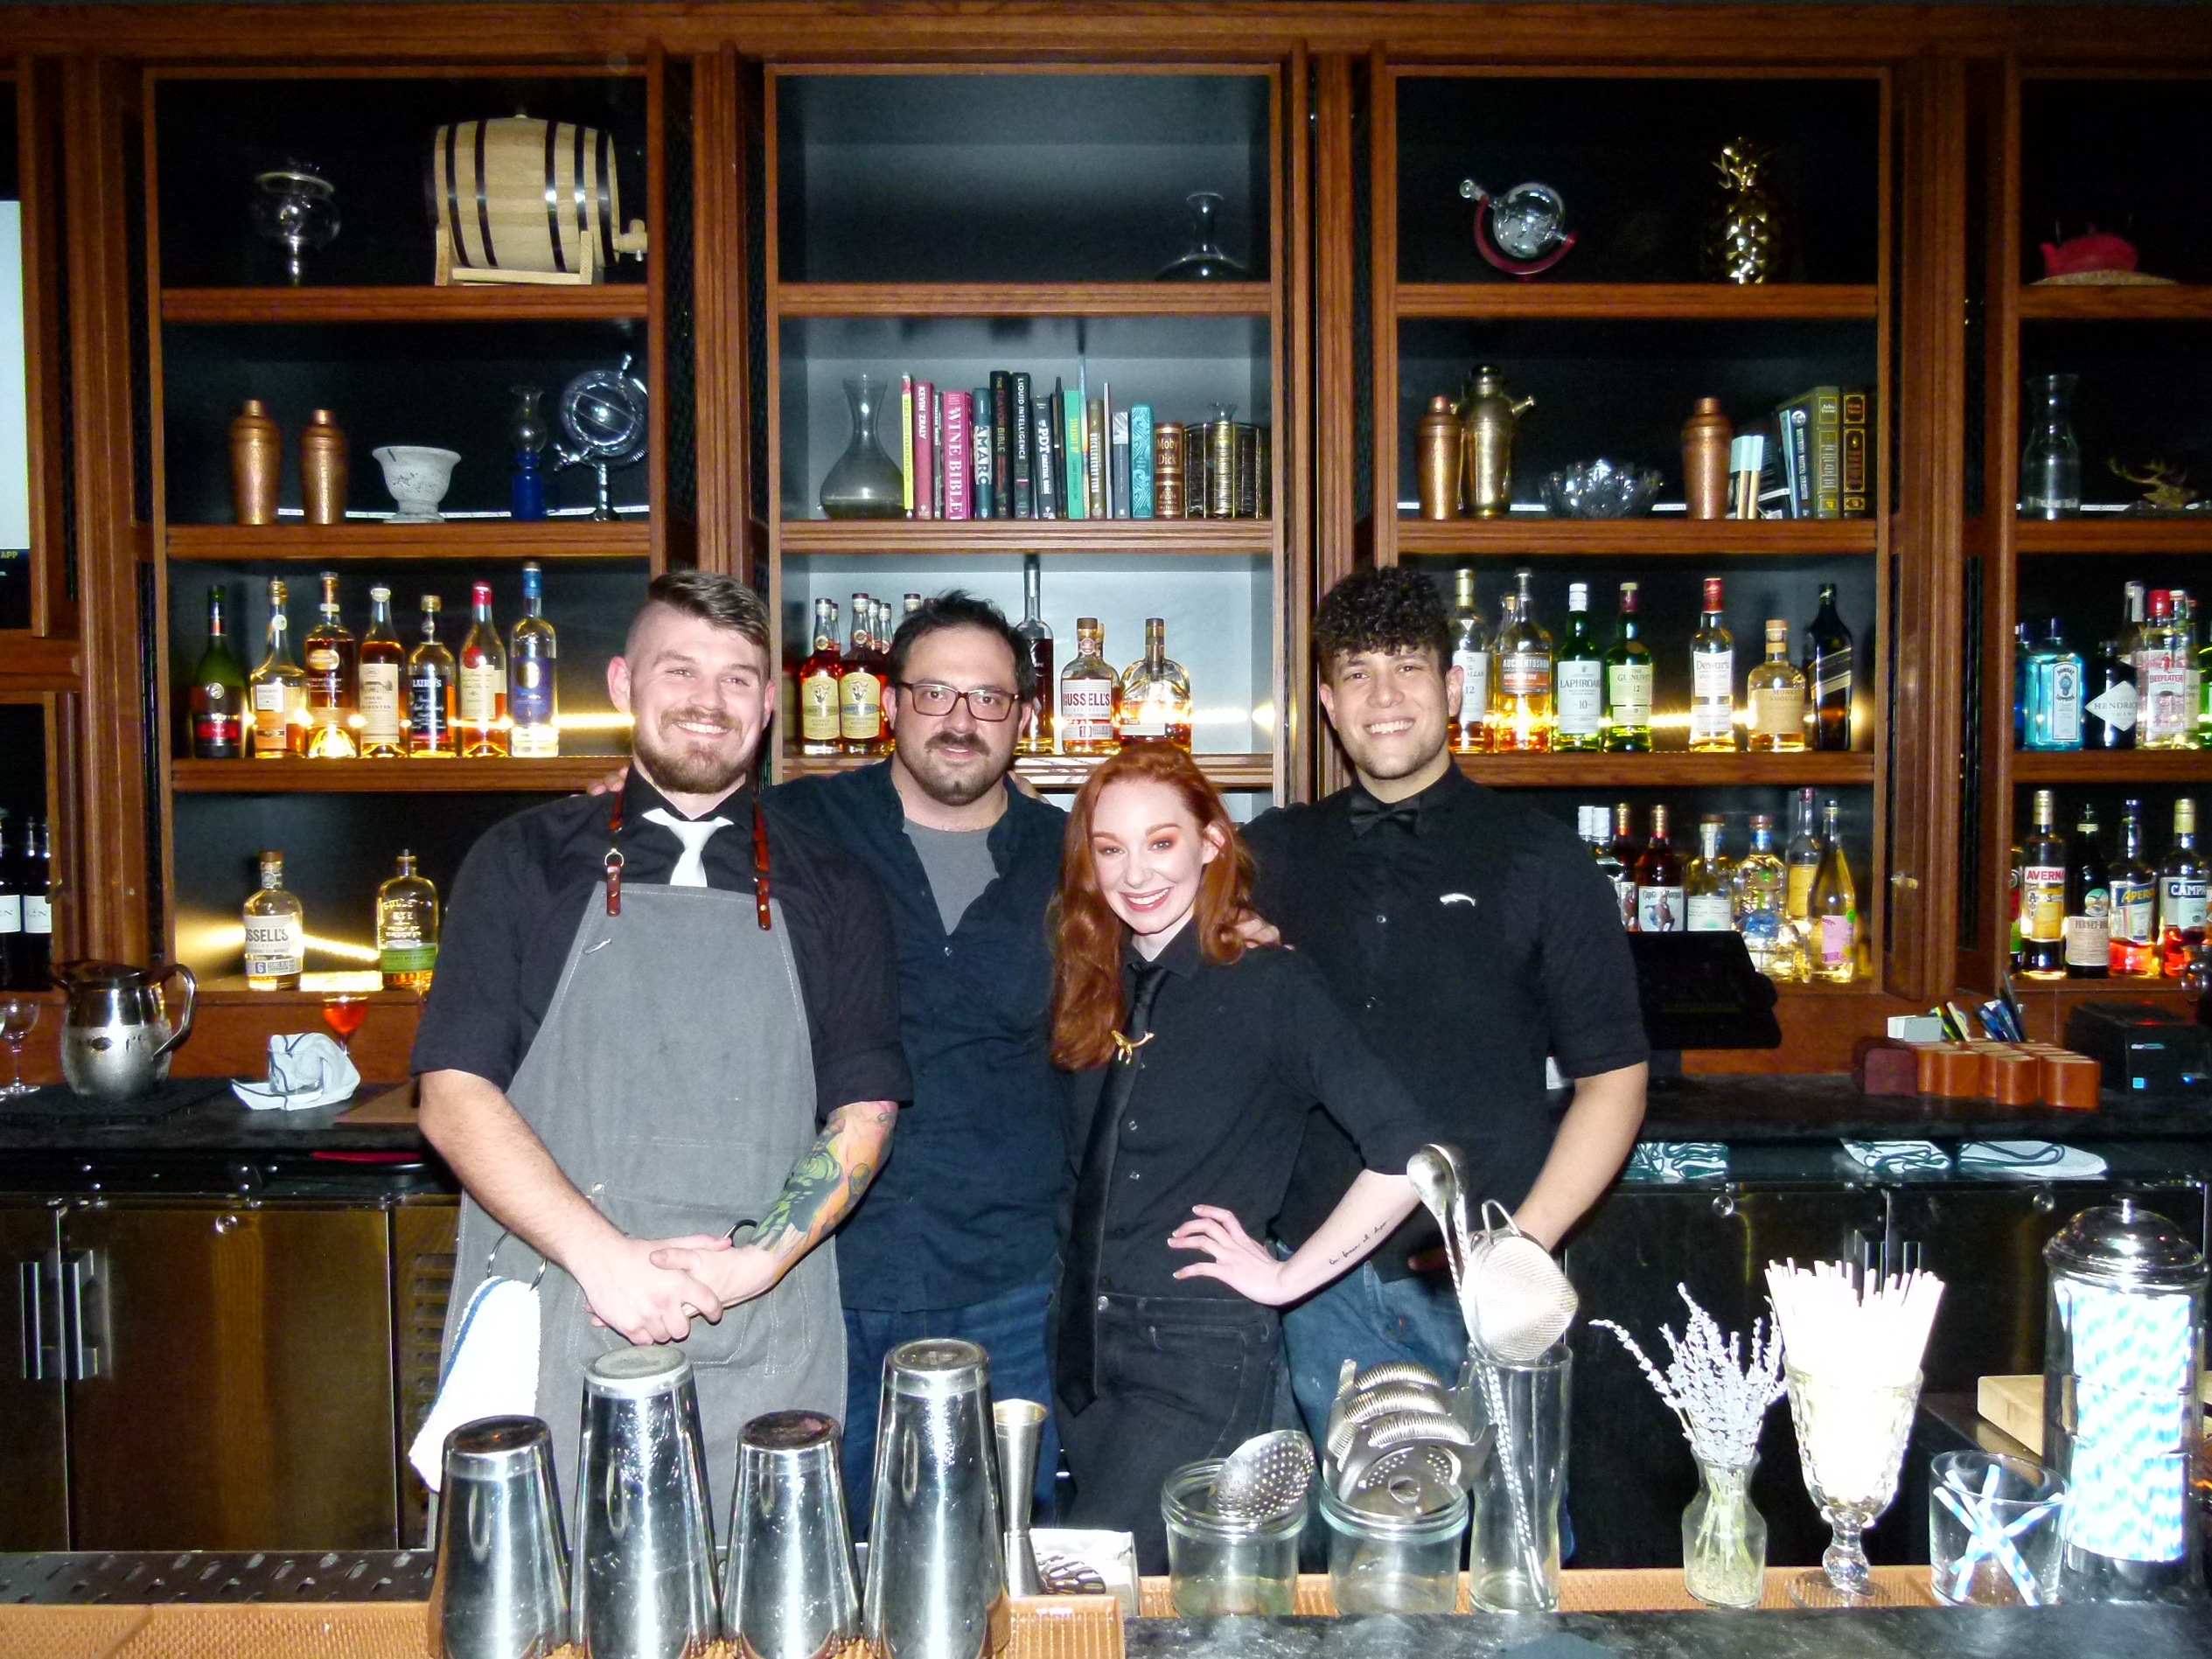 Bartenders for the opening party (l. to r.): Jackson Allen, Nick Andes, Veronica Ewing, Tal Kroser.